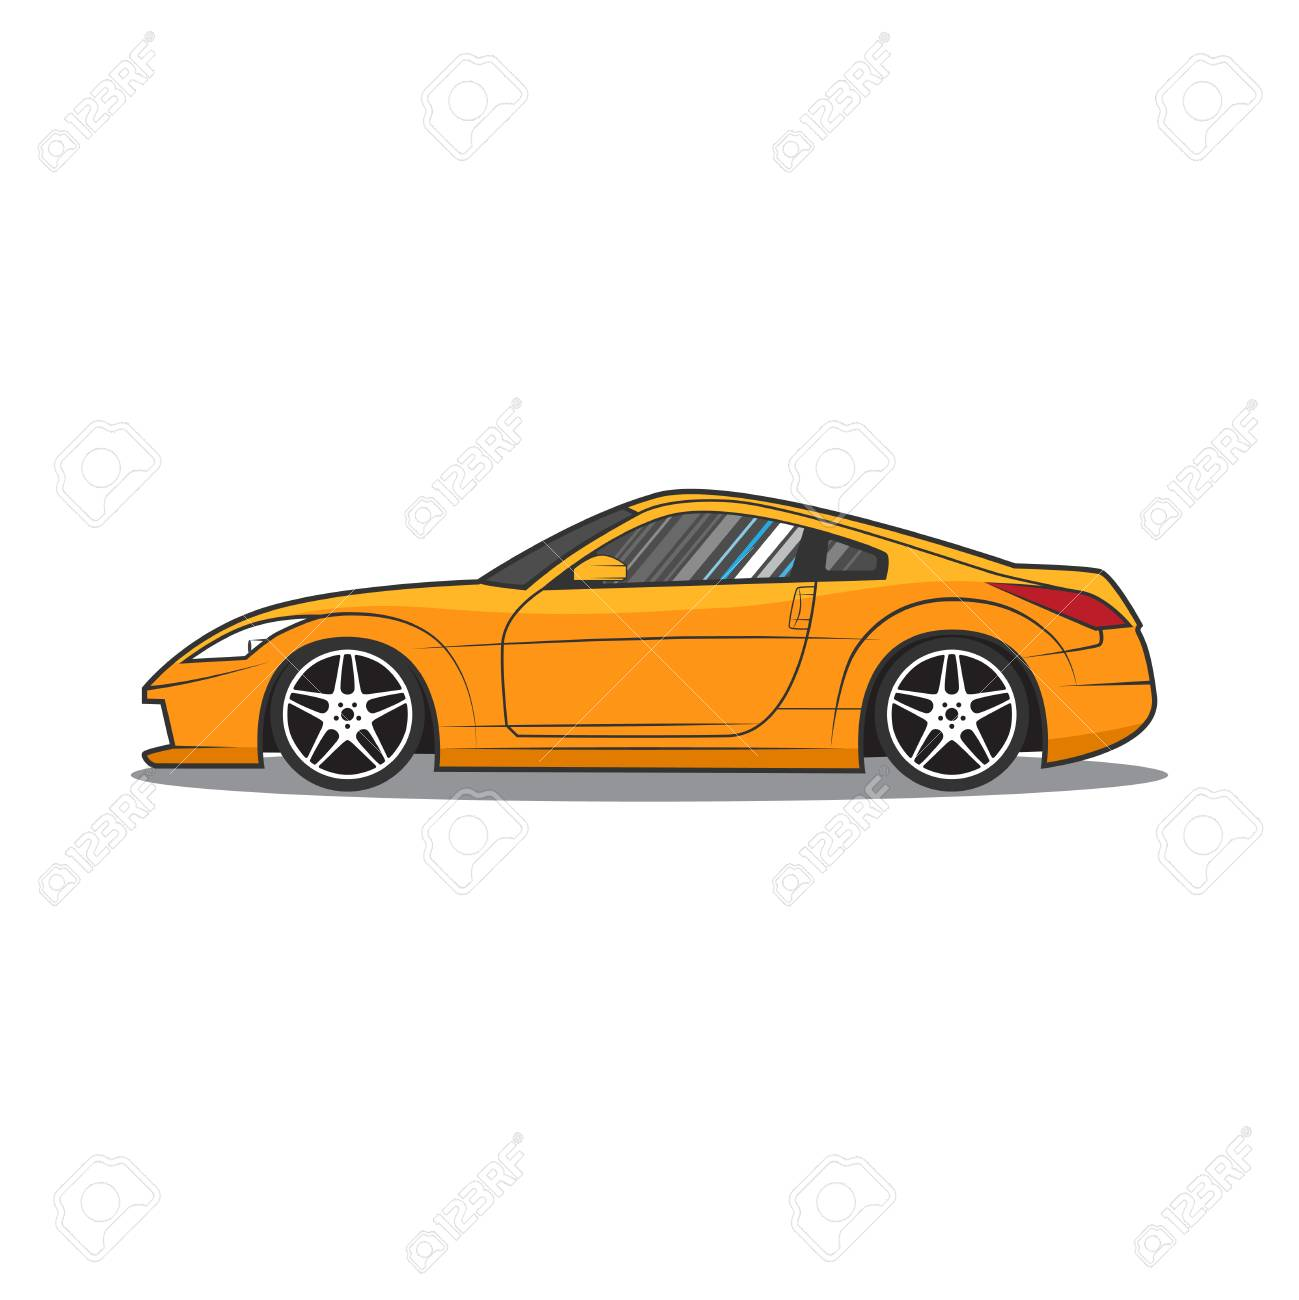 Sports Car Car Sketch Side View Royalty Free Cliparts Vectors